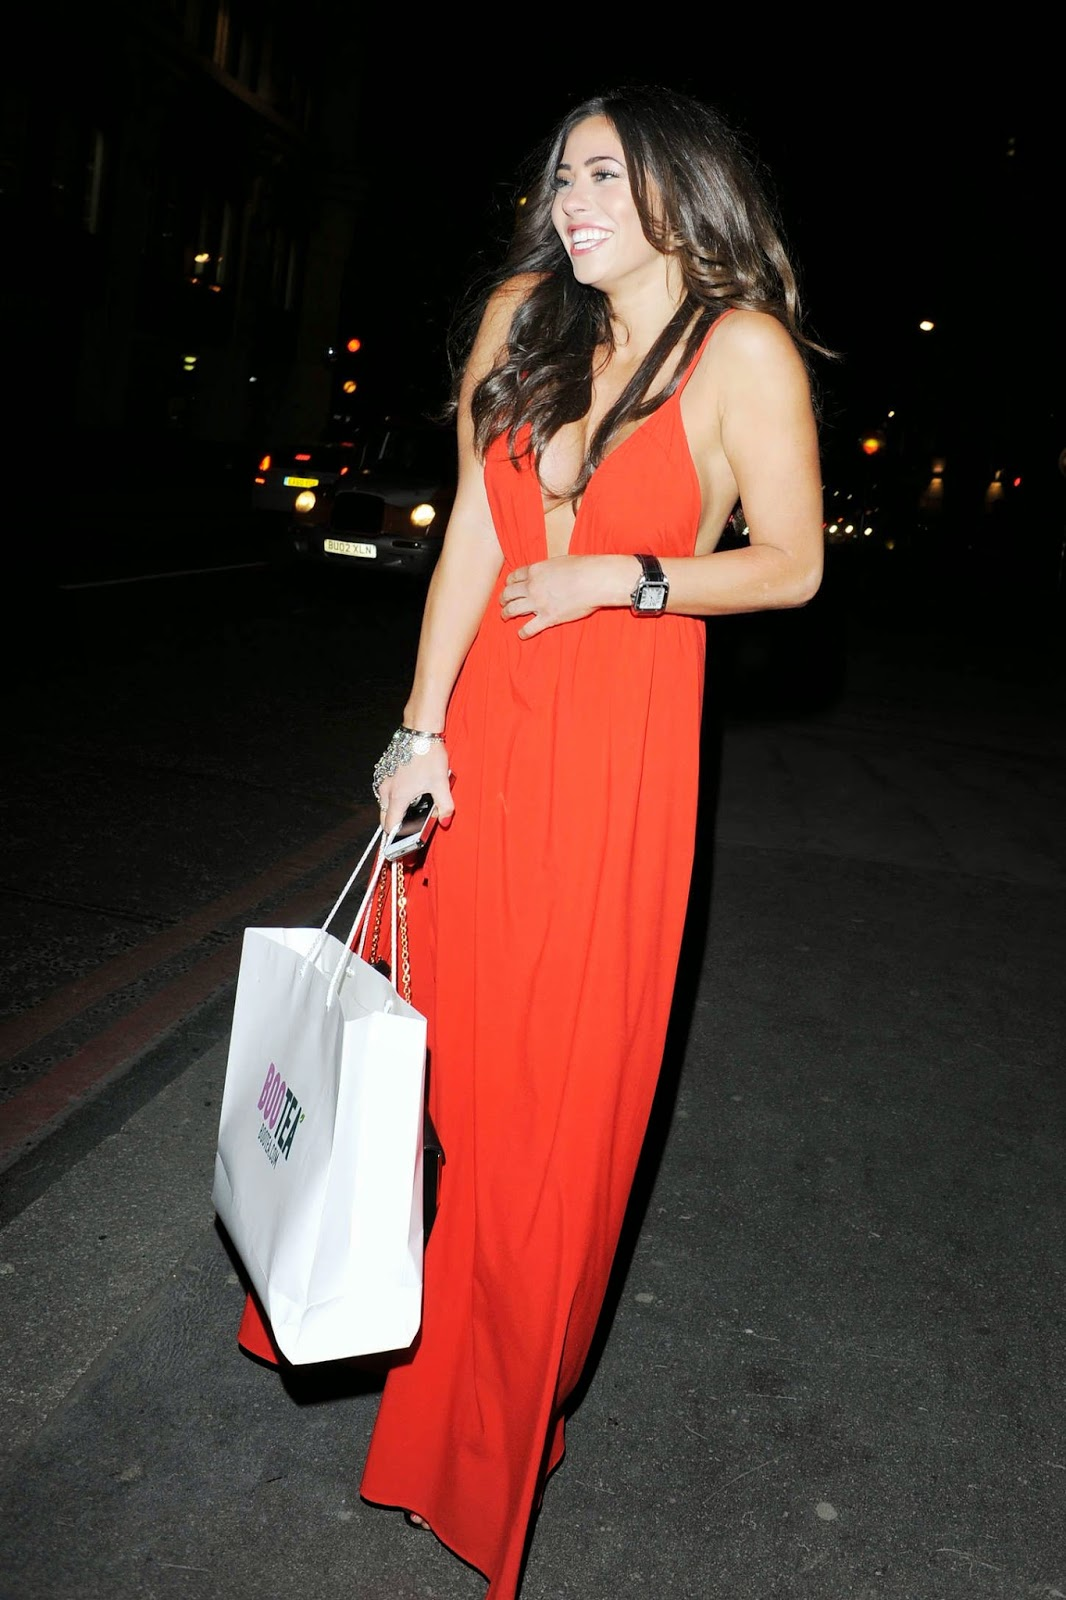 Pascal Craymer in a plunging red dress at The Sun: Bizarre Party in London